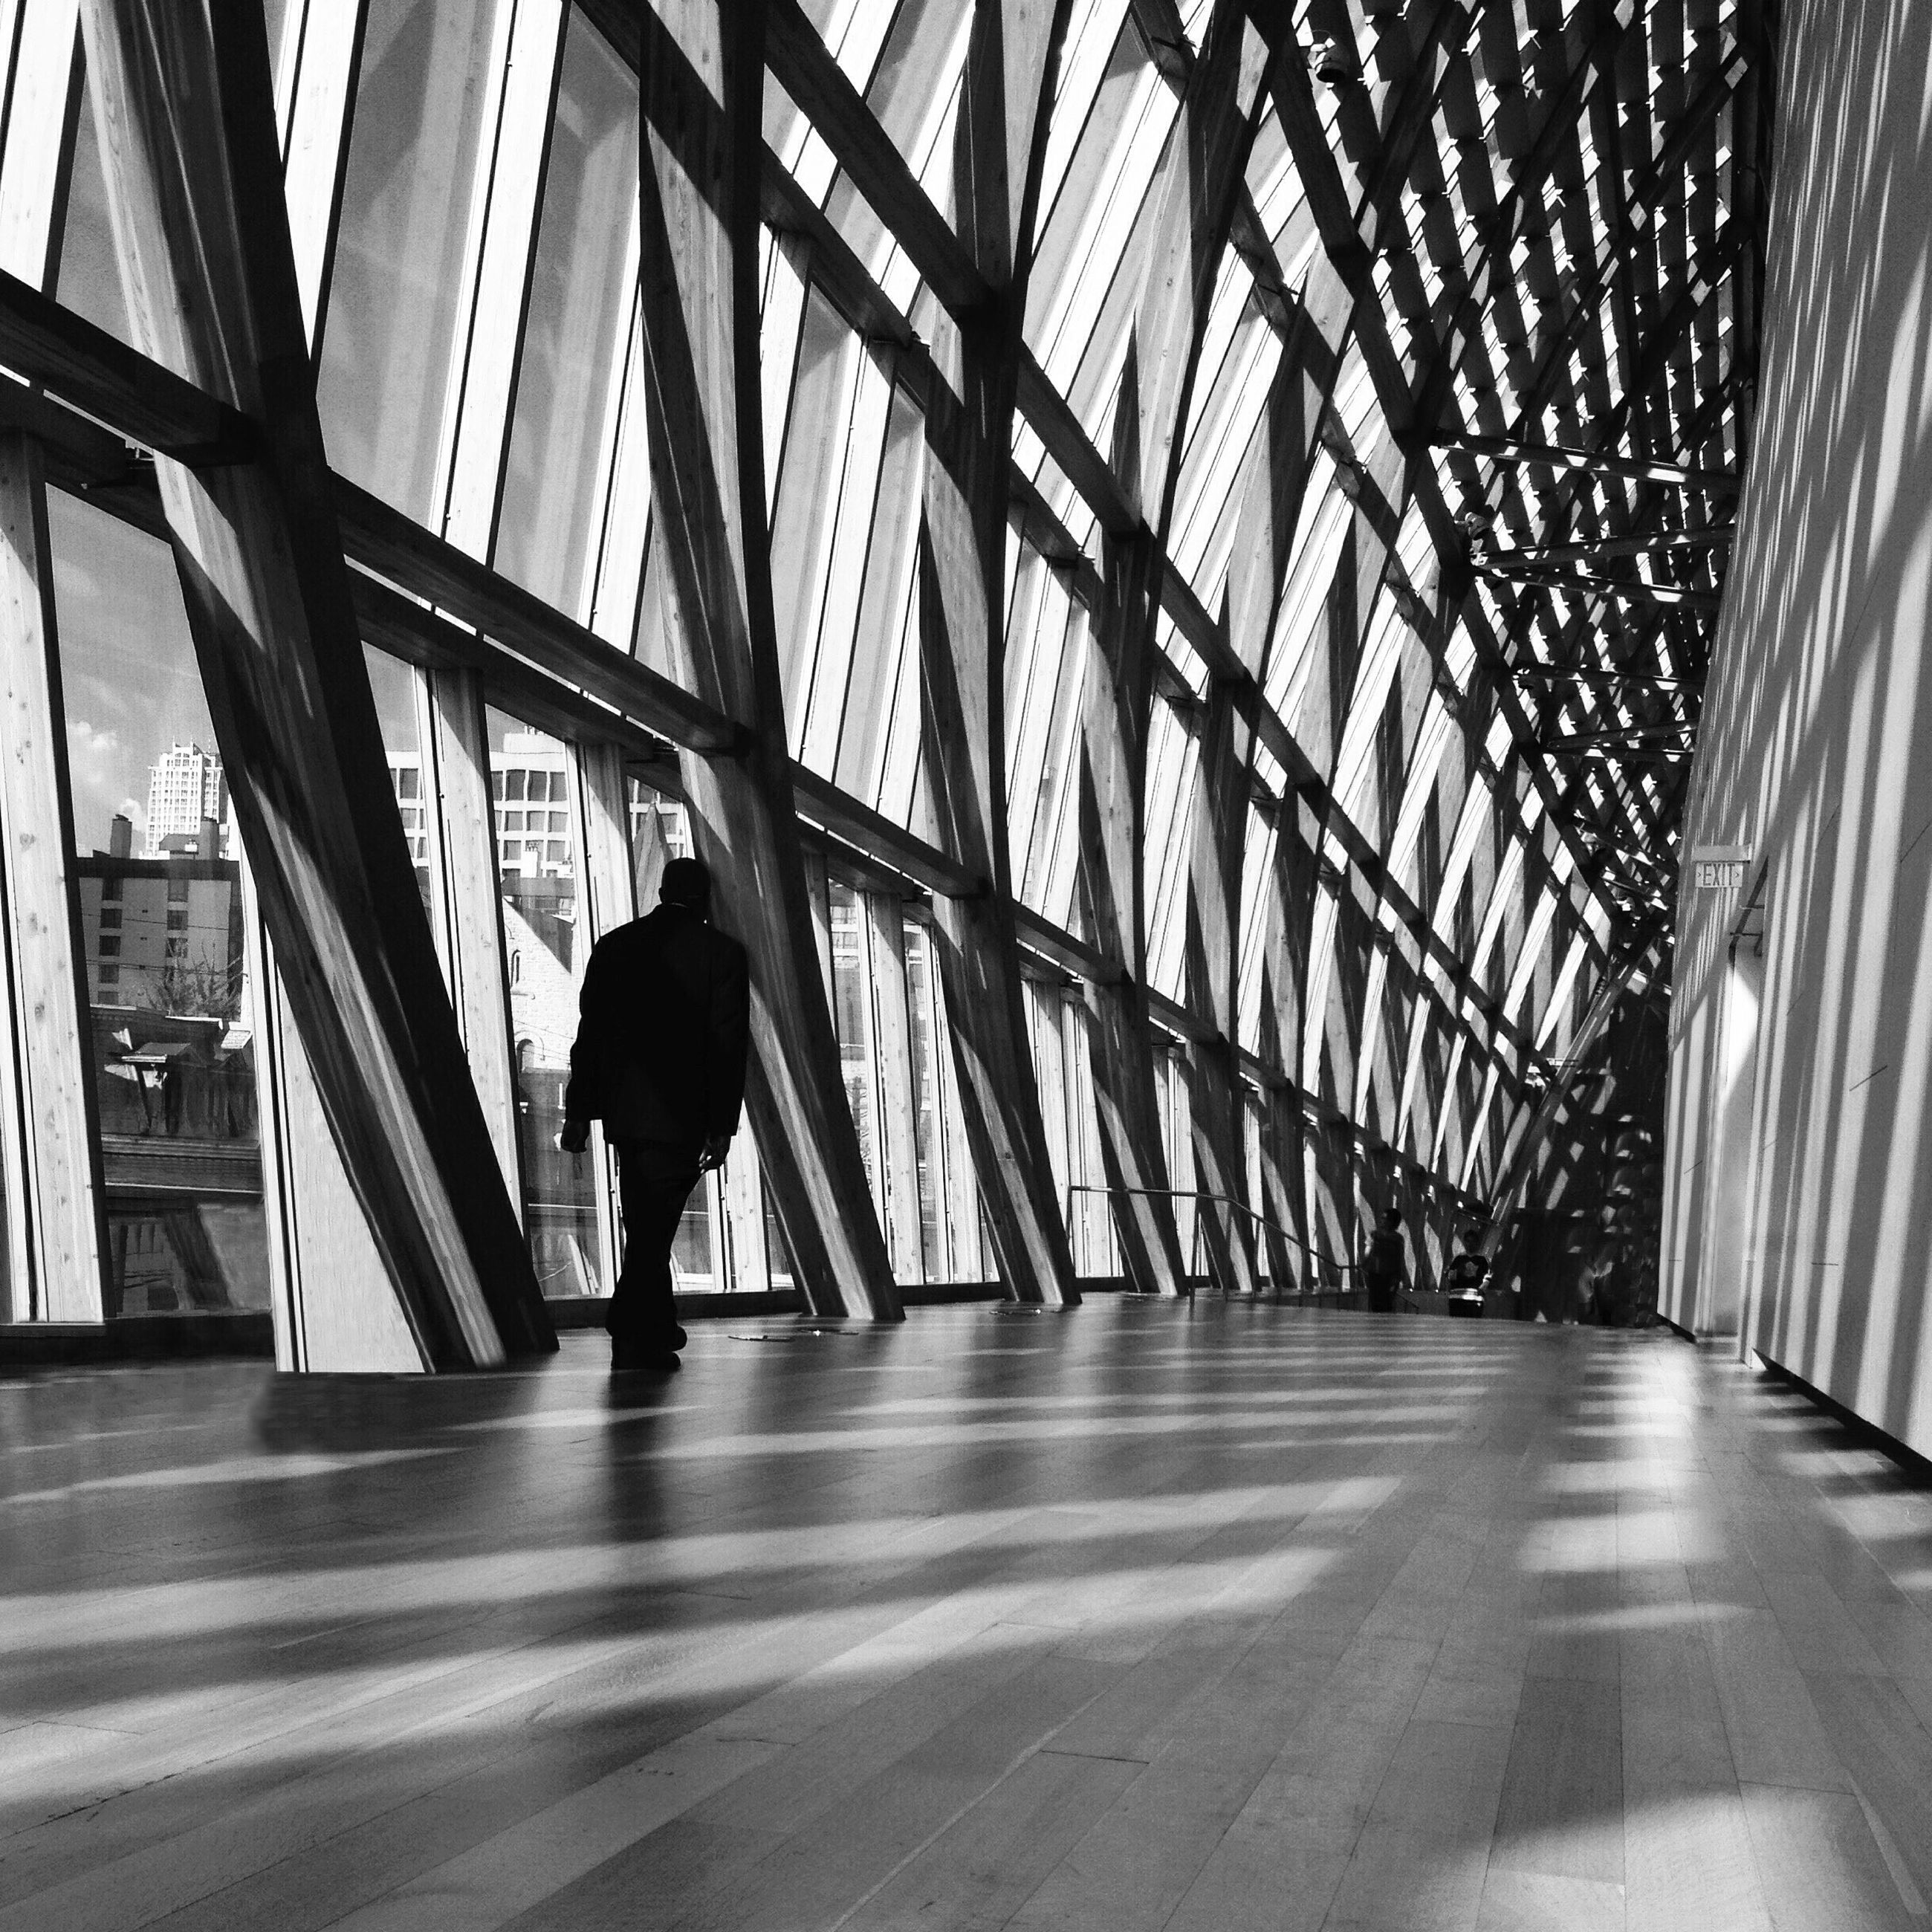 indoors, full length, lifestyles, walking, rear view, men, architecture, built structure, silhouette, person, leisure activity, standing, corridor, casual clothing, building, the way forward, window